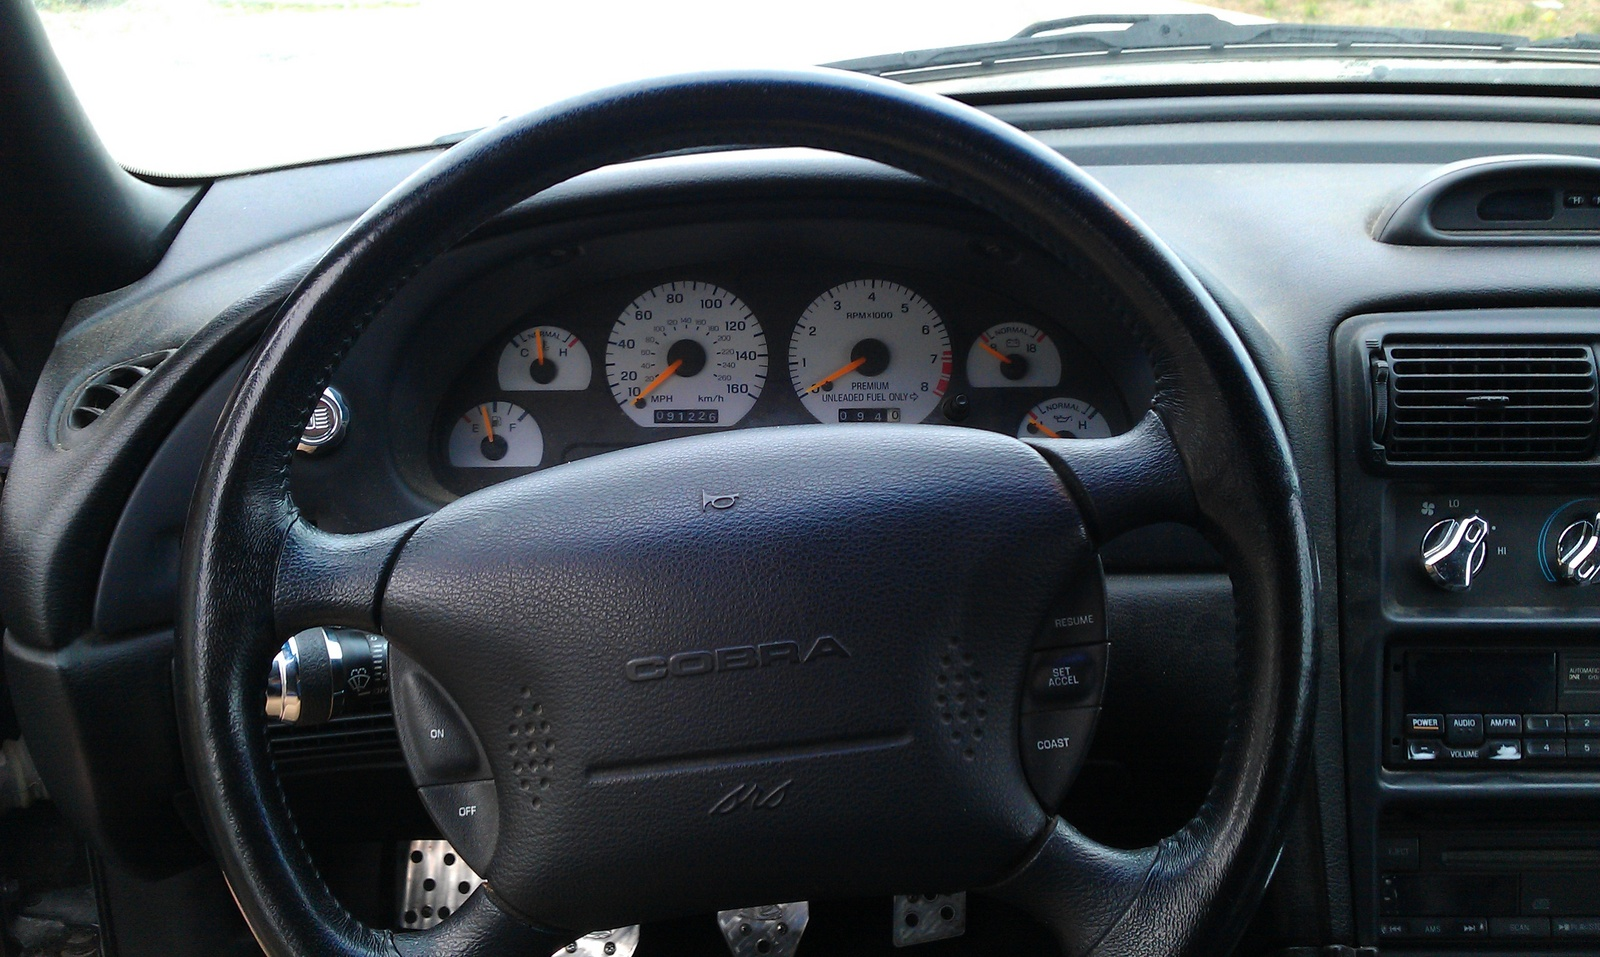 1996 Ford Mustang Svt Cobra Interior Pictures Cargurus